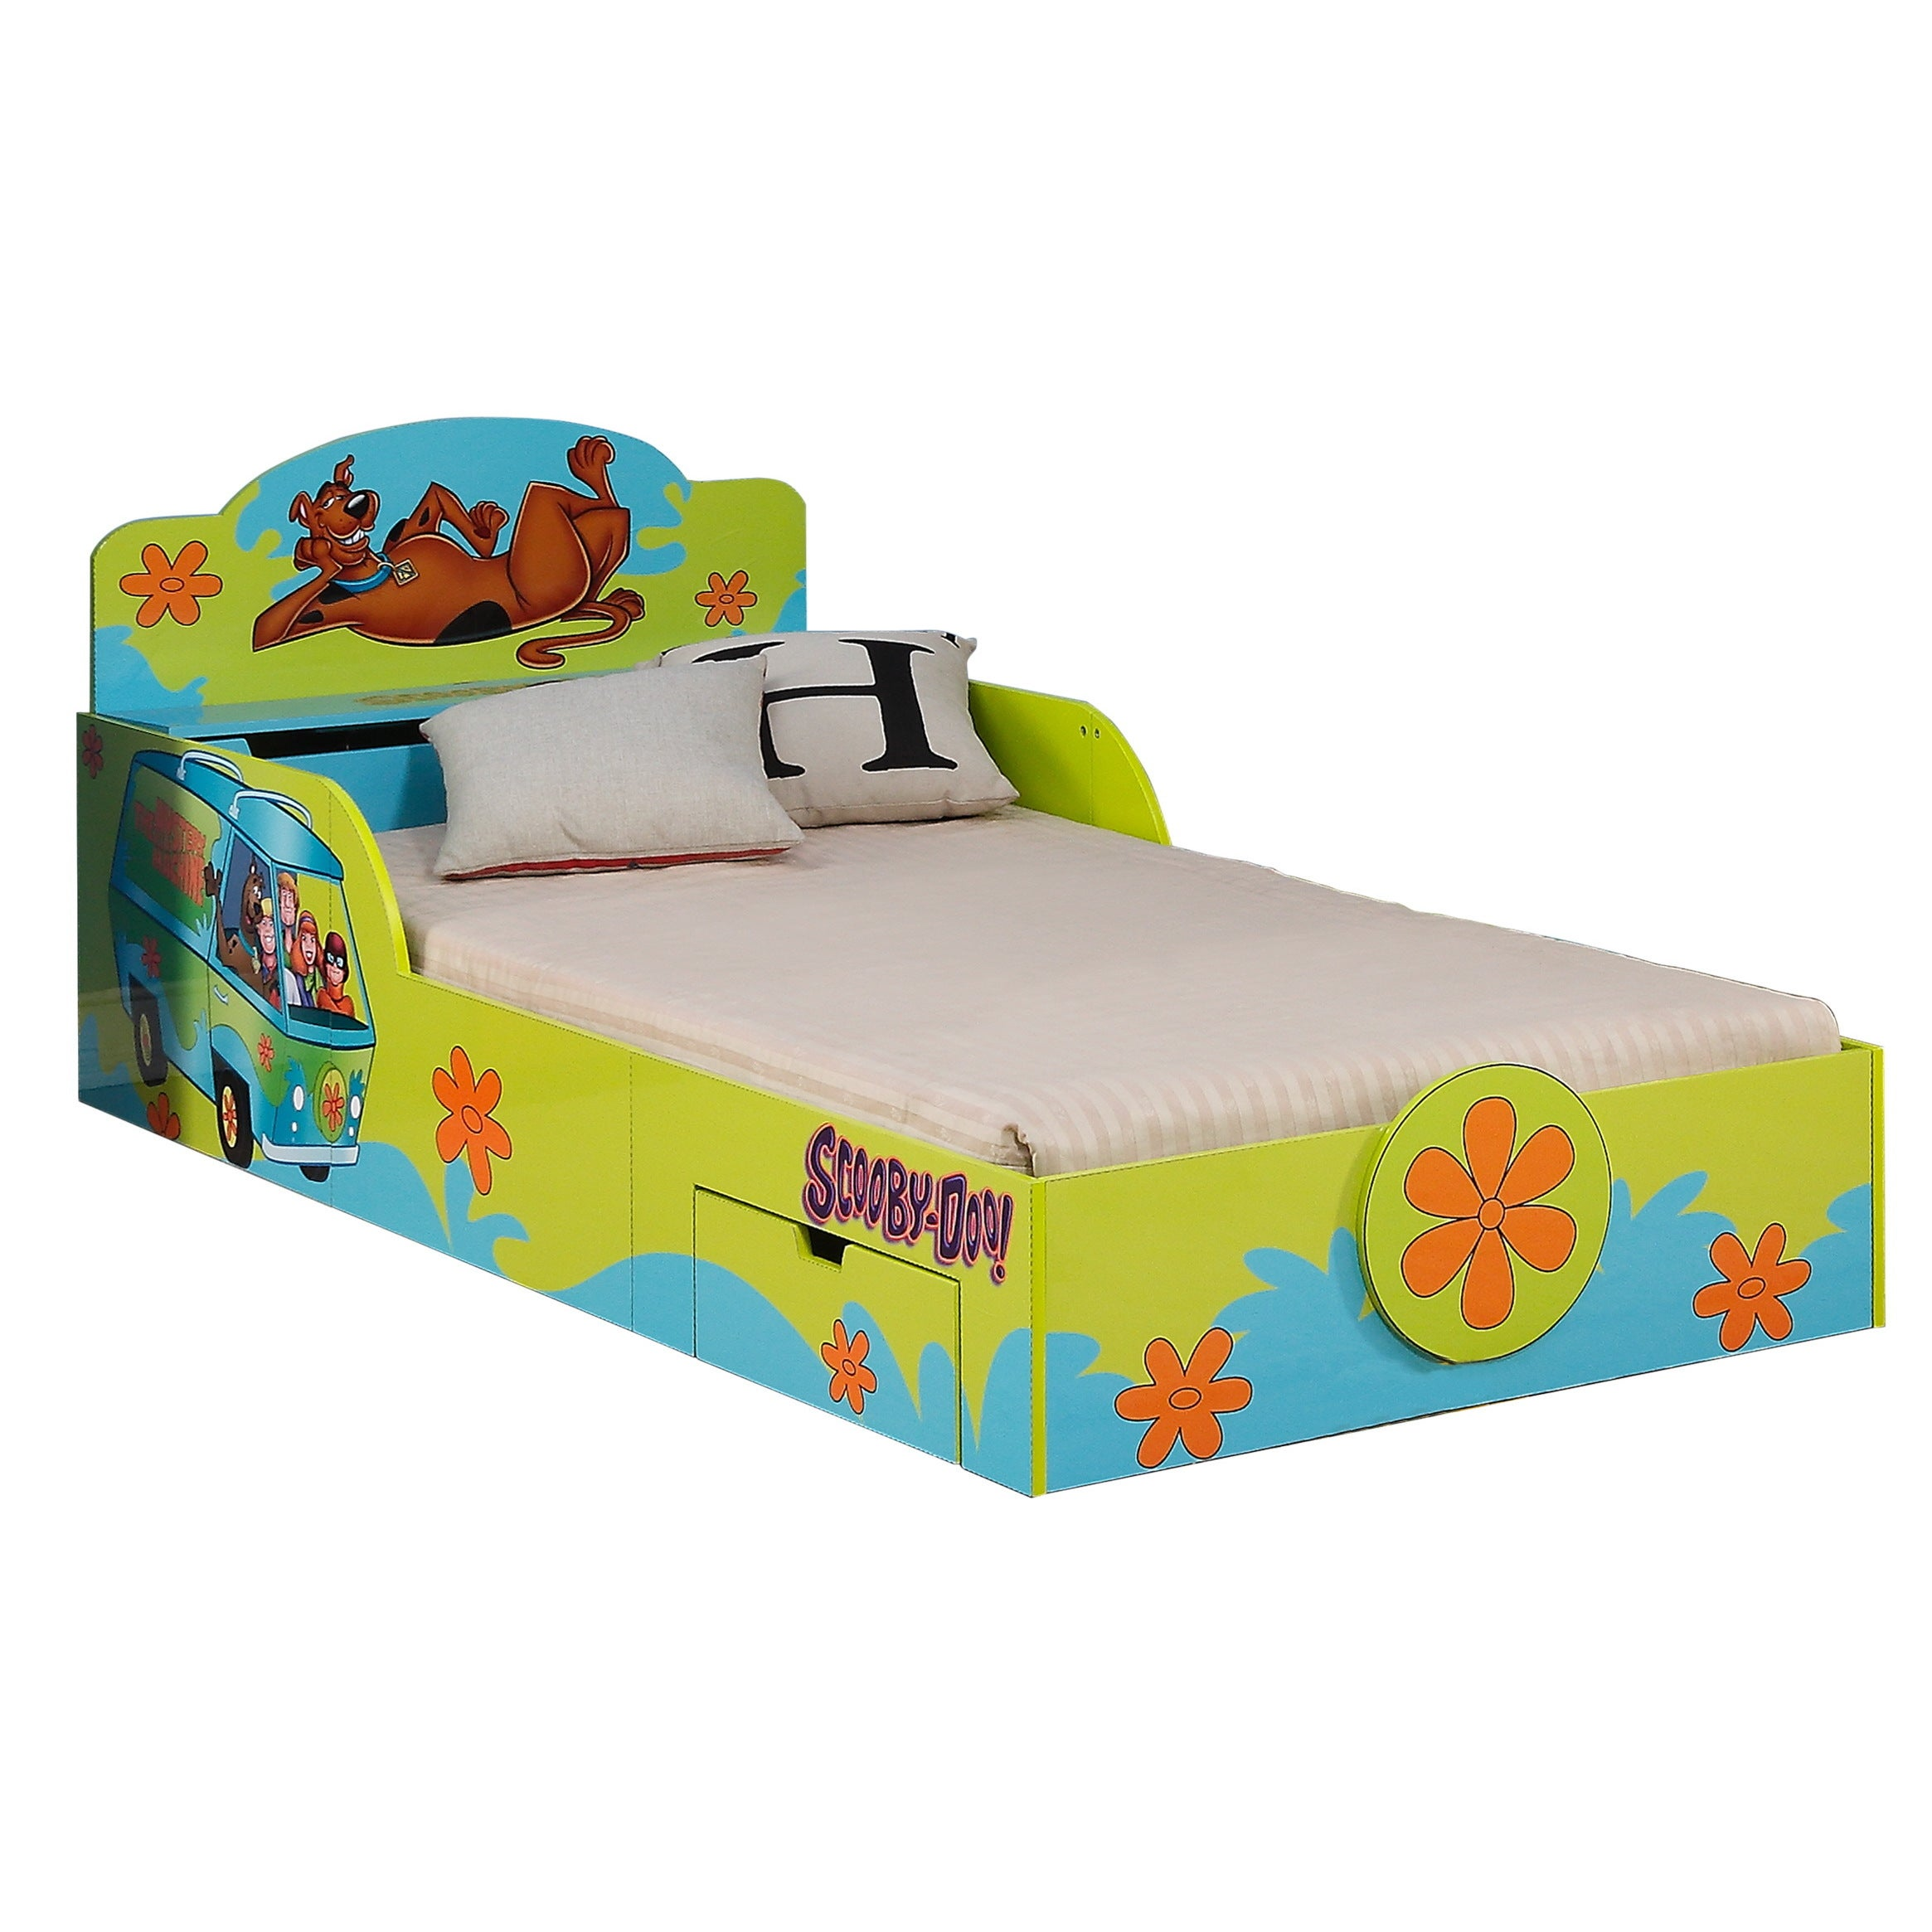 O'Kids Scooby Doo Kids Bed (Scooby Doo), Green, Size Twin